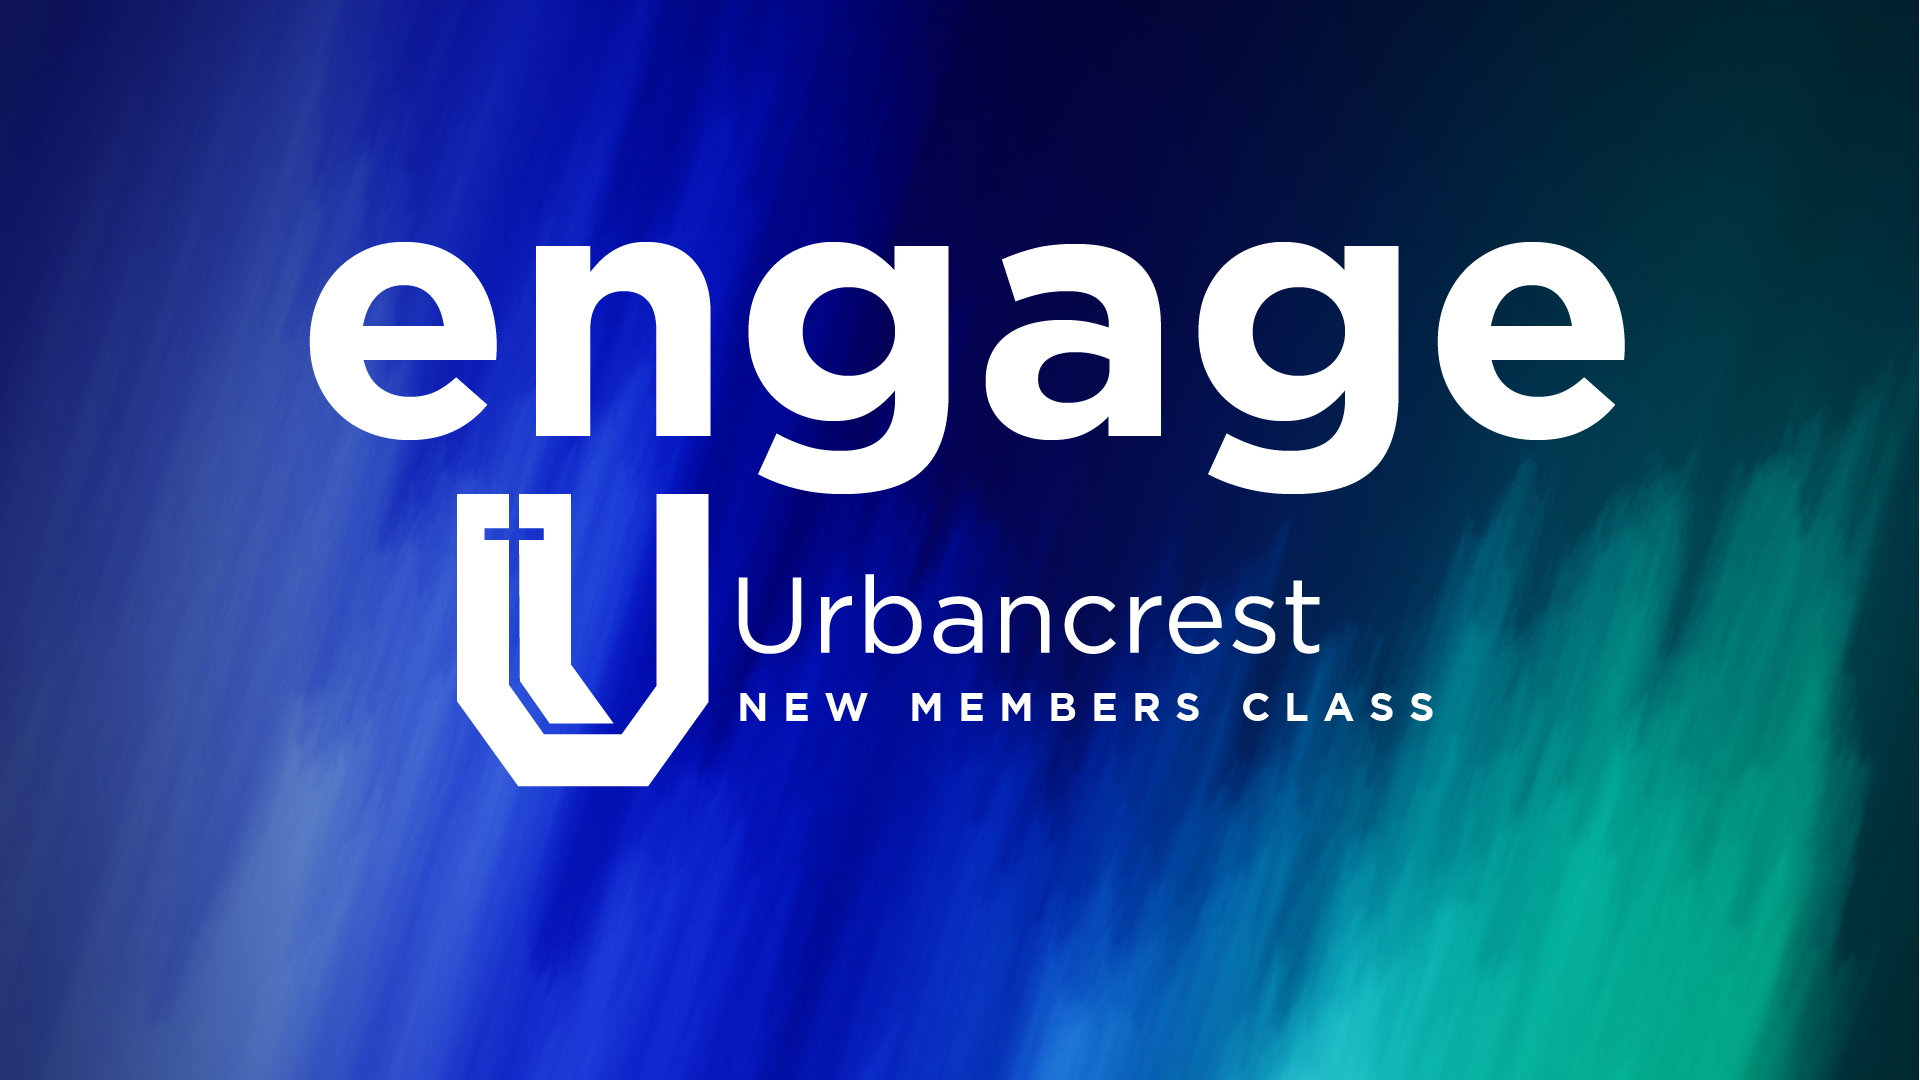 Engage urbancrest class   wide no date